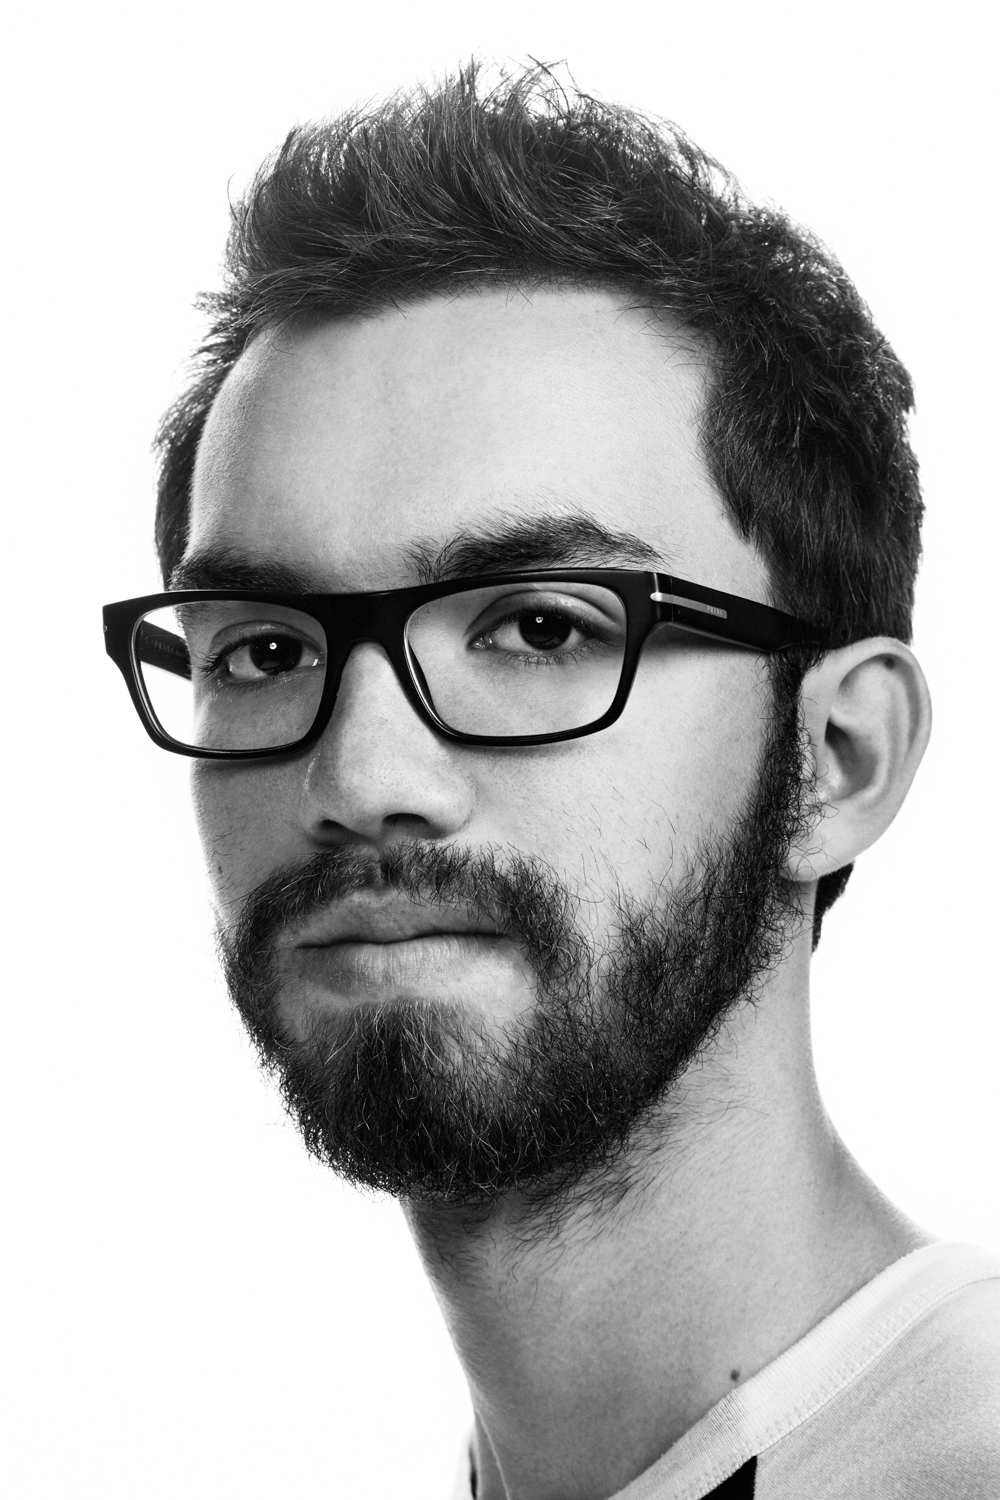 Man on white background studio photography black and white portraits hipster with glasess